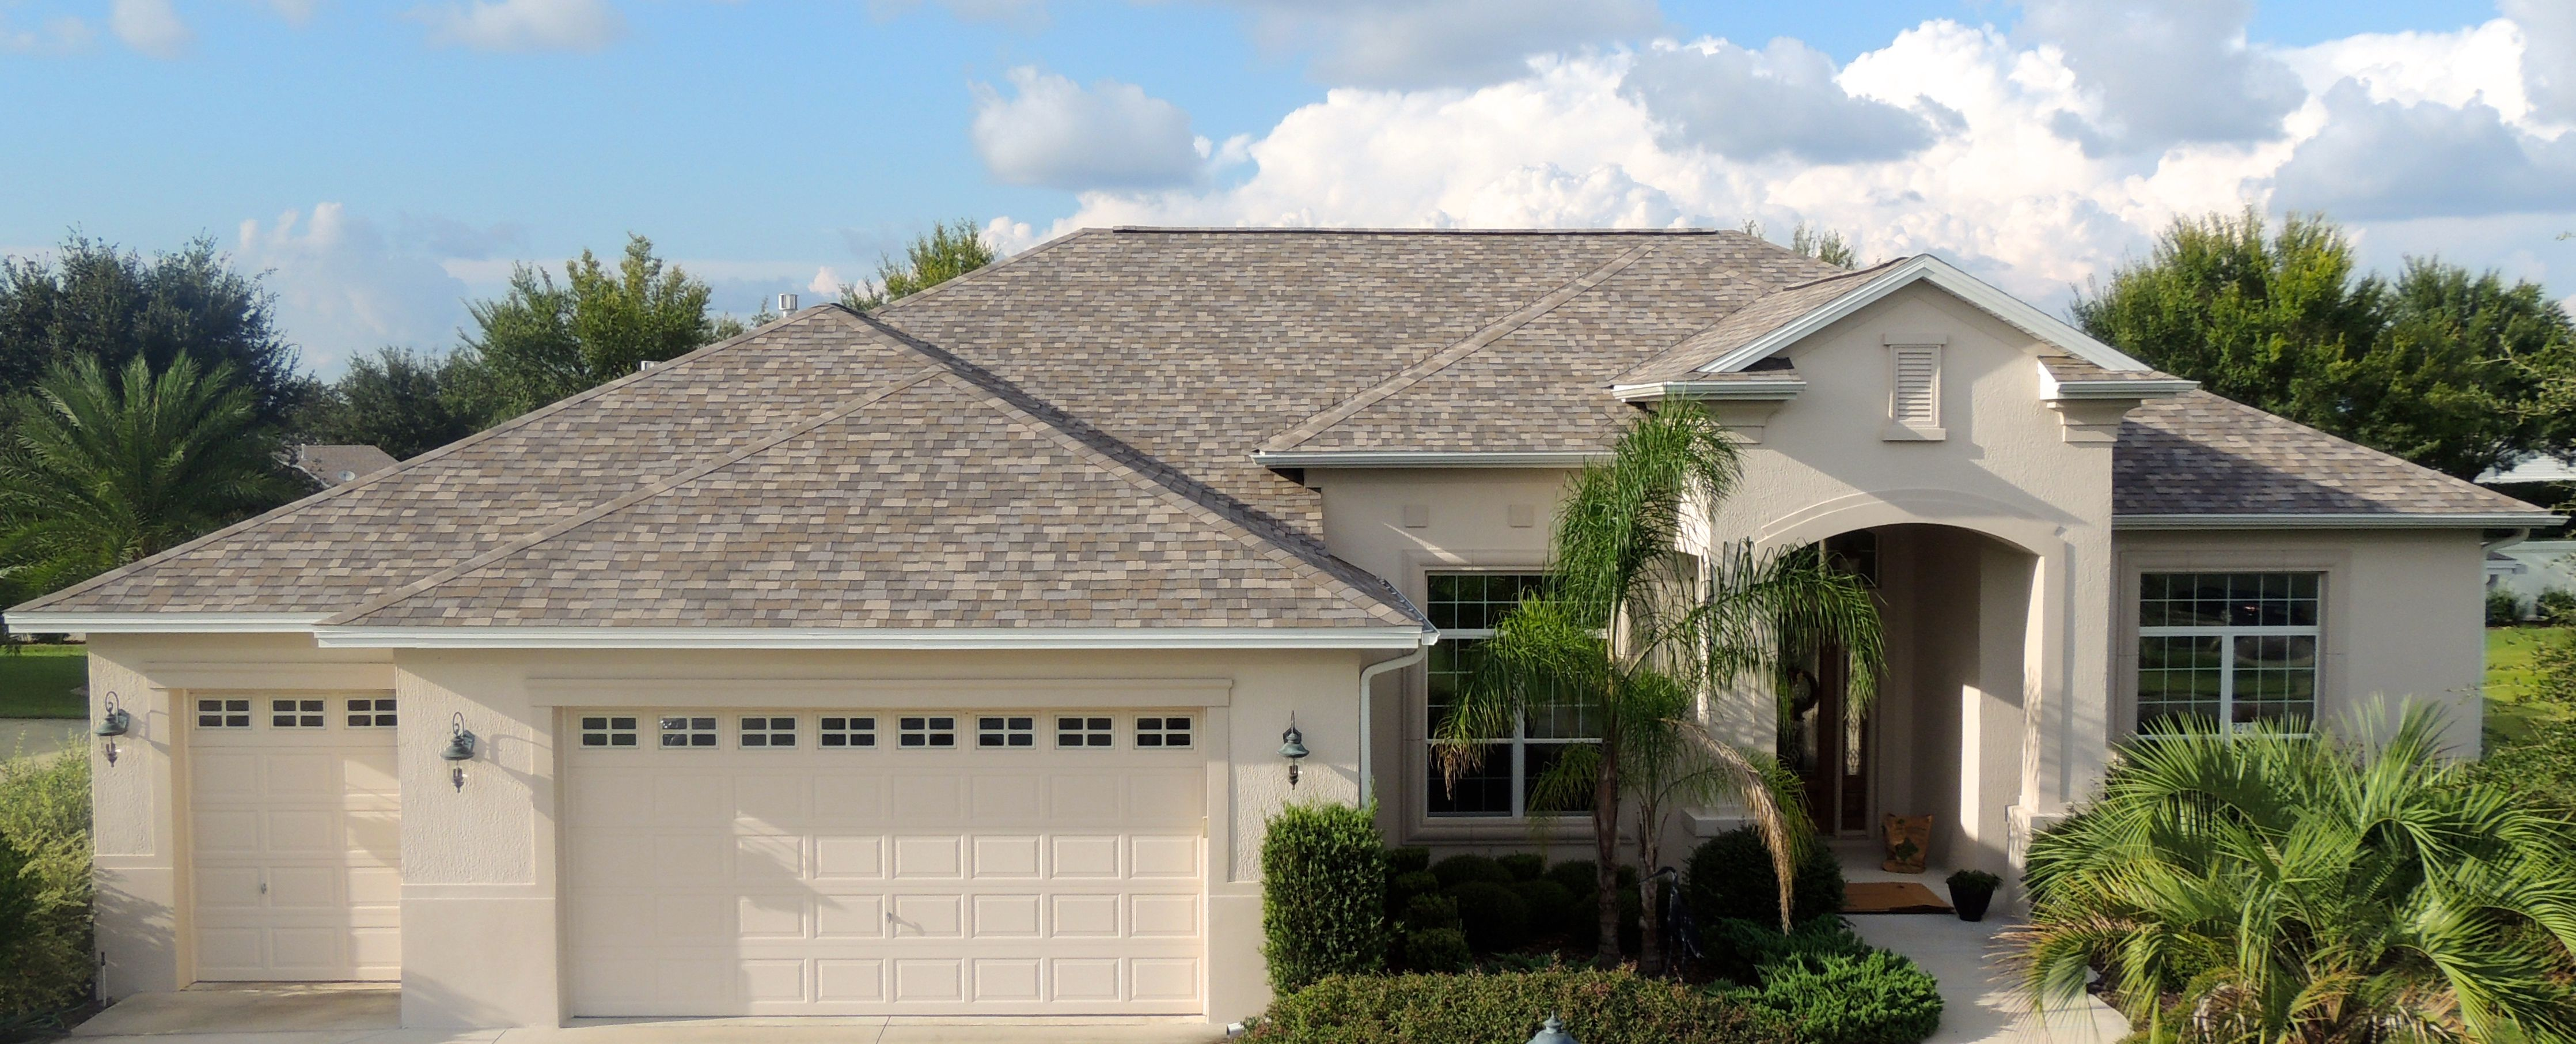 Best Image Result For Owens Corning Sand Dune House Styles 640 x 480